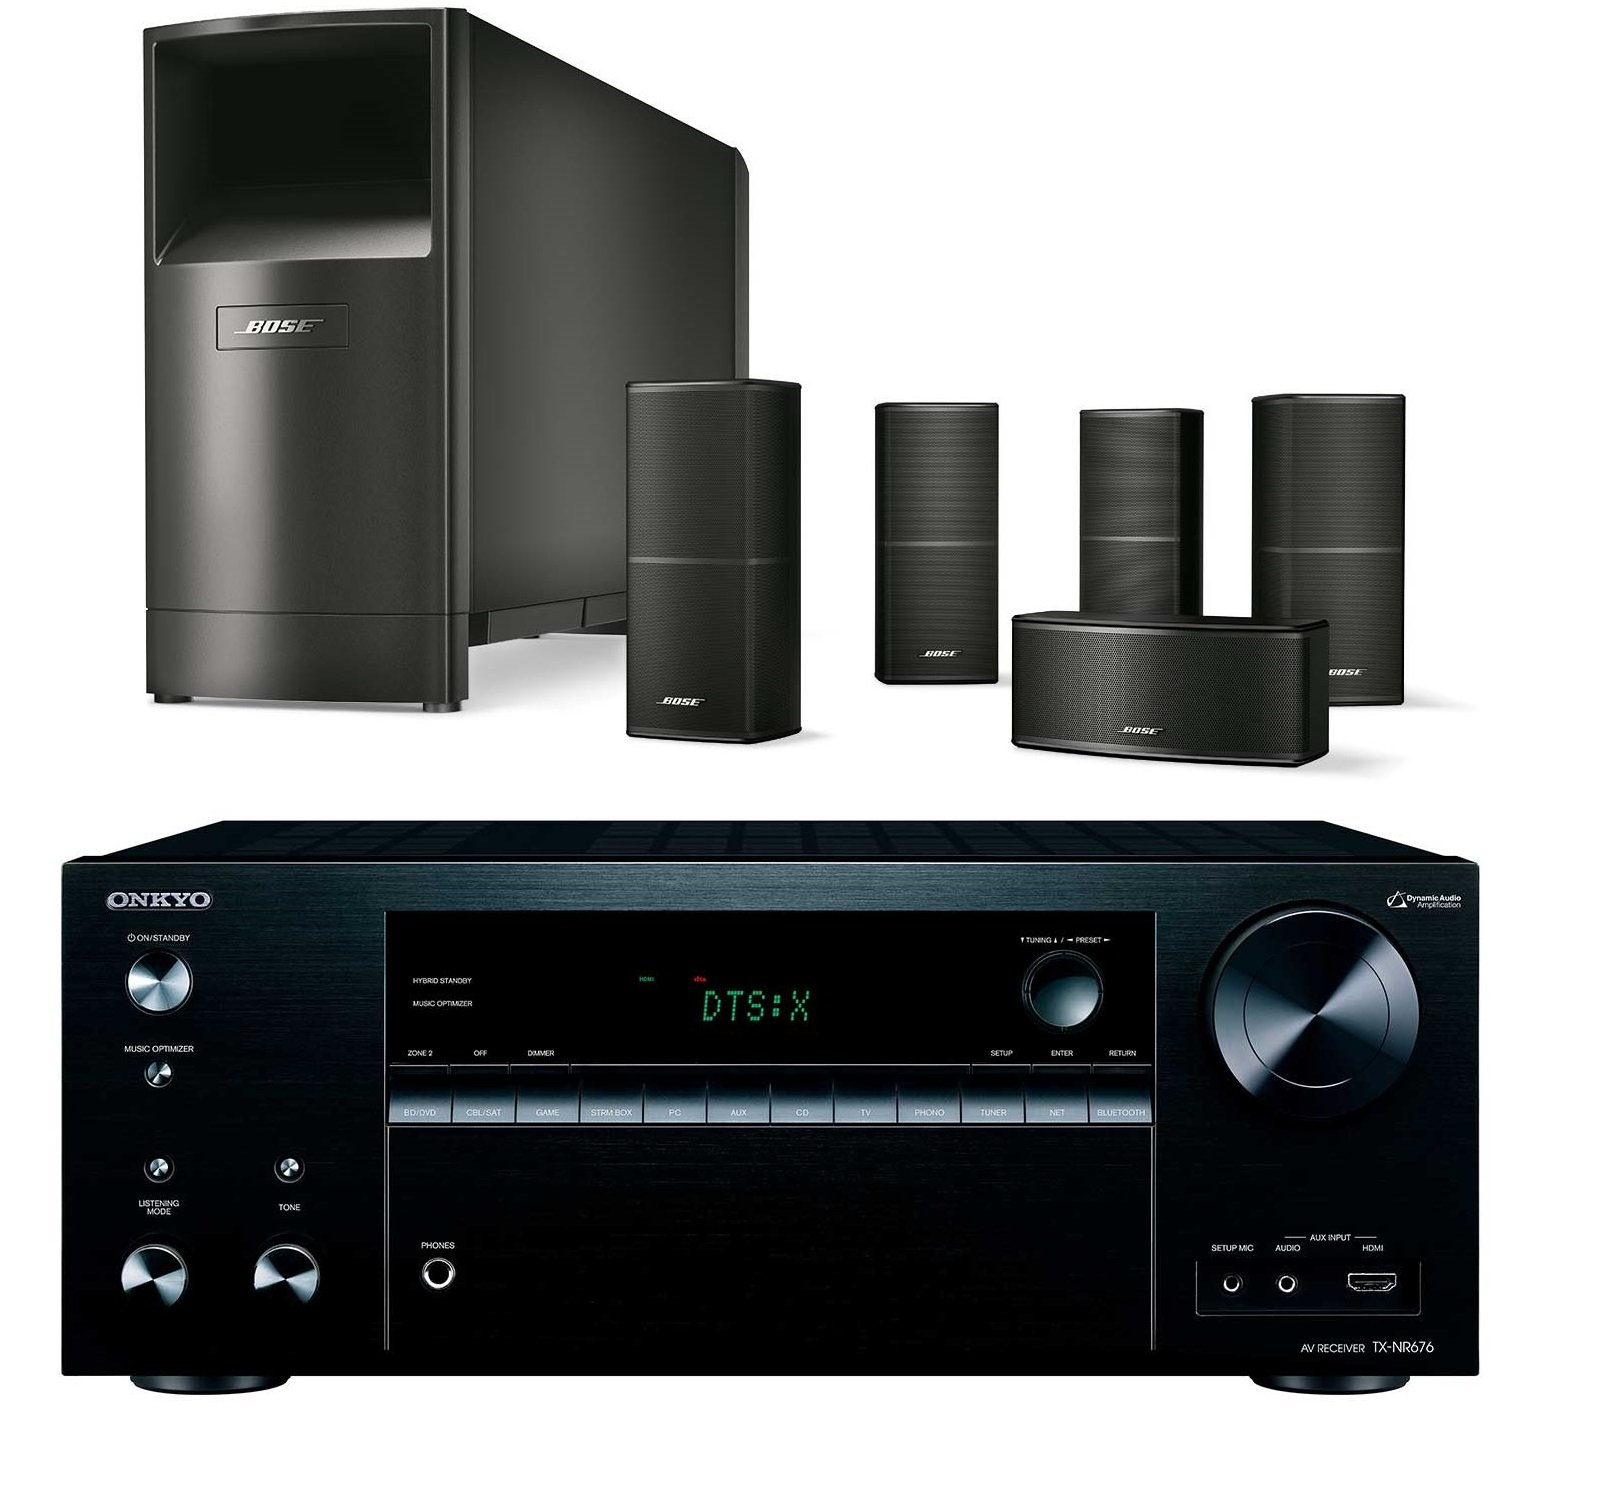 Bose Acoustimass 10 Series V Wired Home Theater Speaker System, Black, with Onkyo TXNR676 4K HDR AV Receiver by Bose